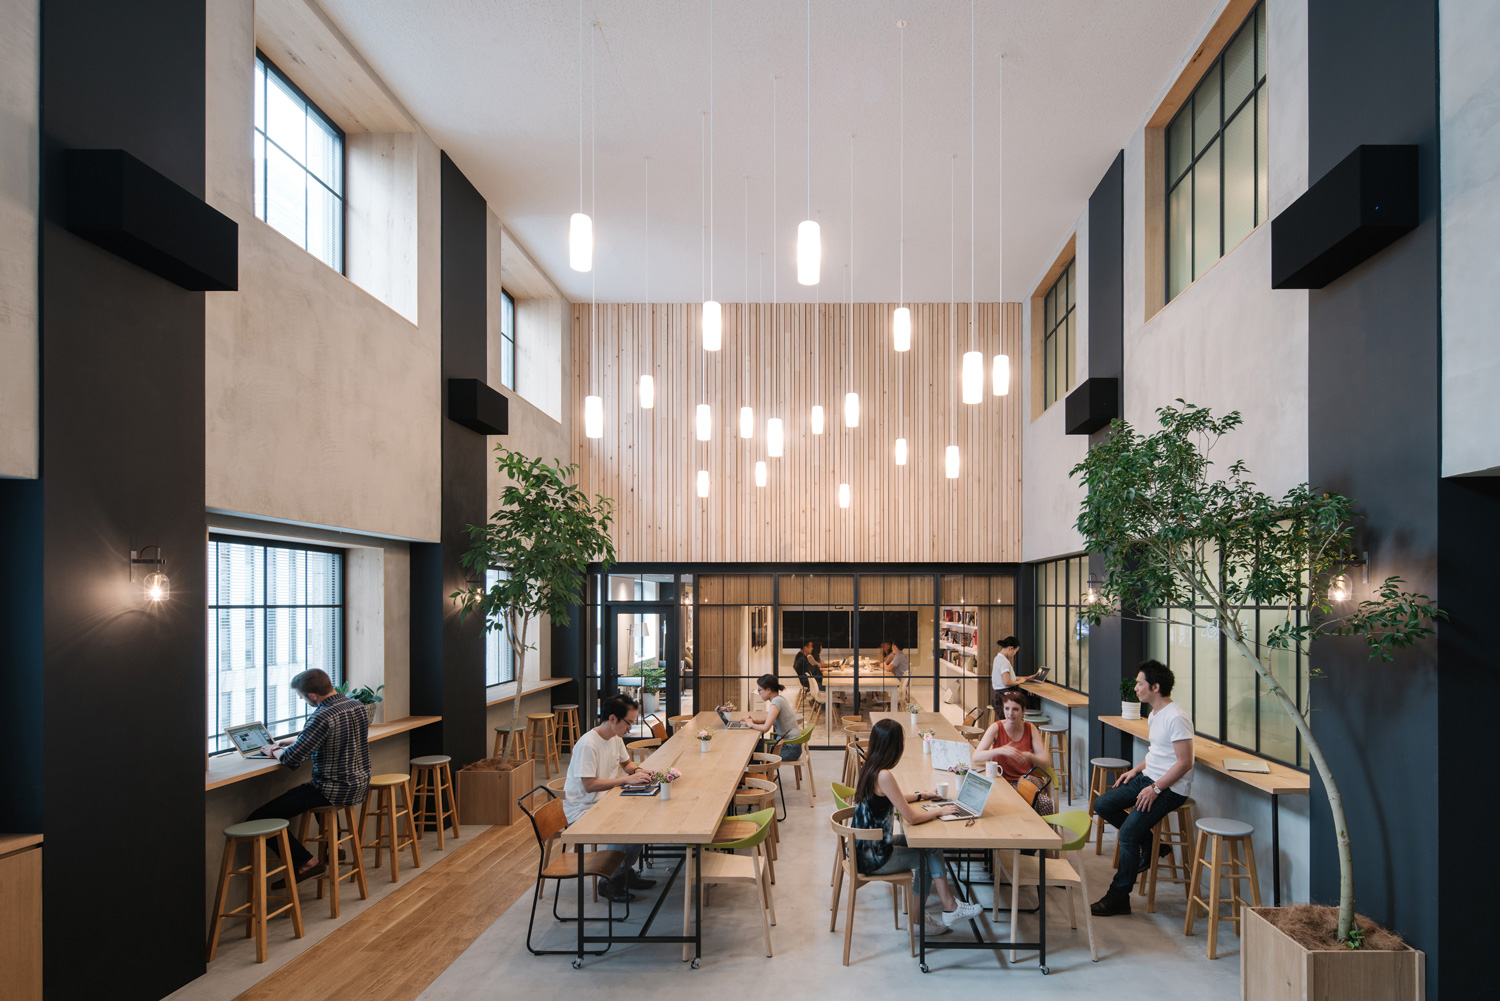 AIRBNB HQ IN TOKYO |  image source: Yellowtrace